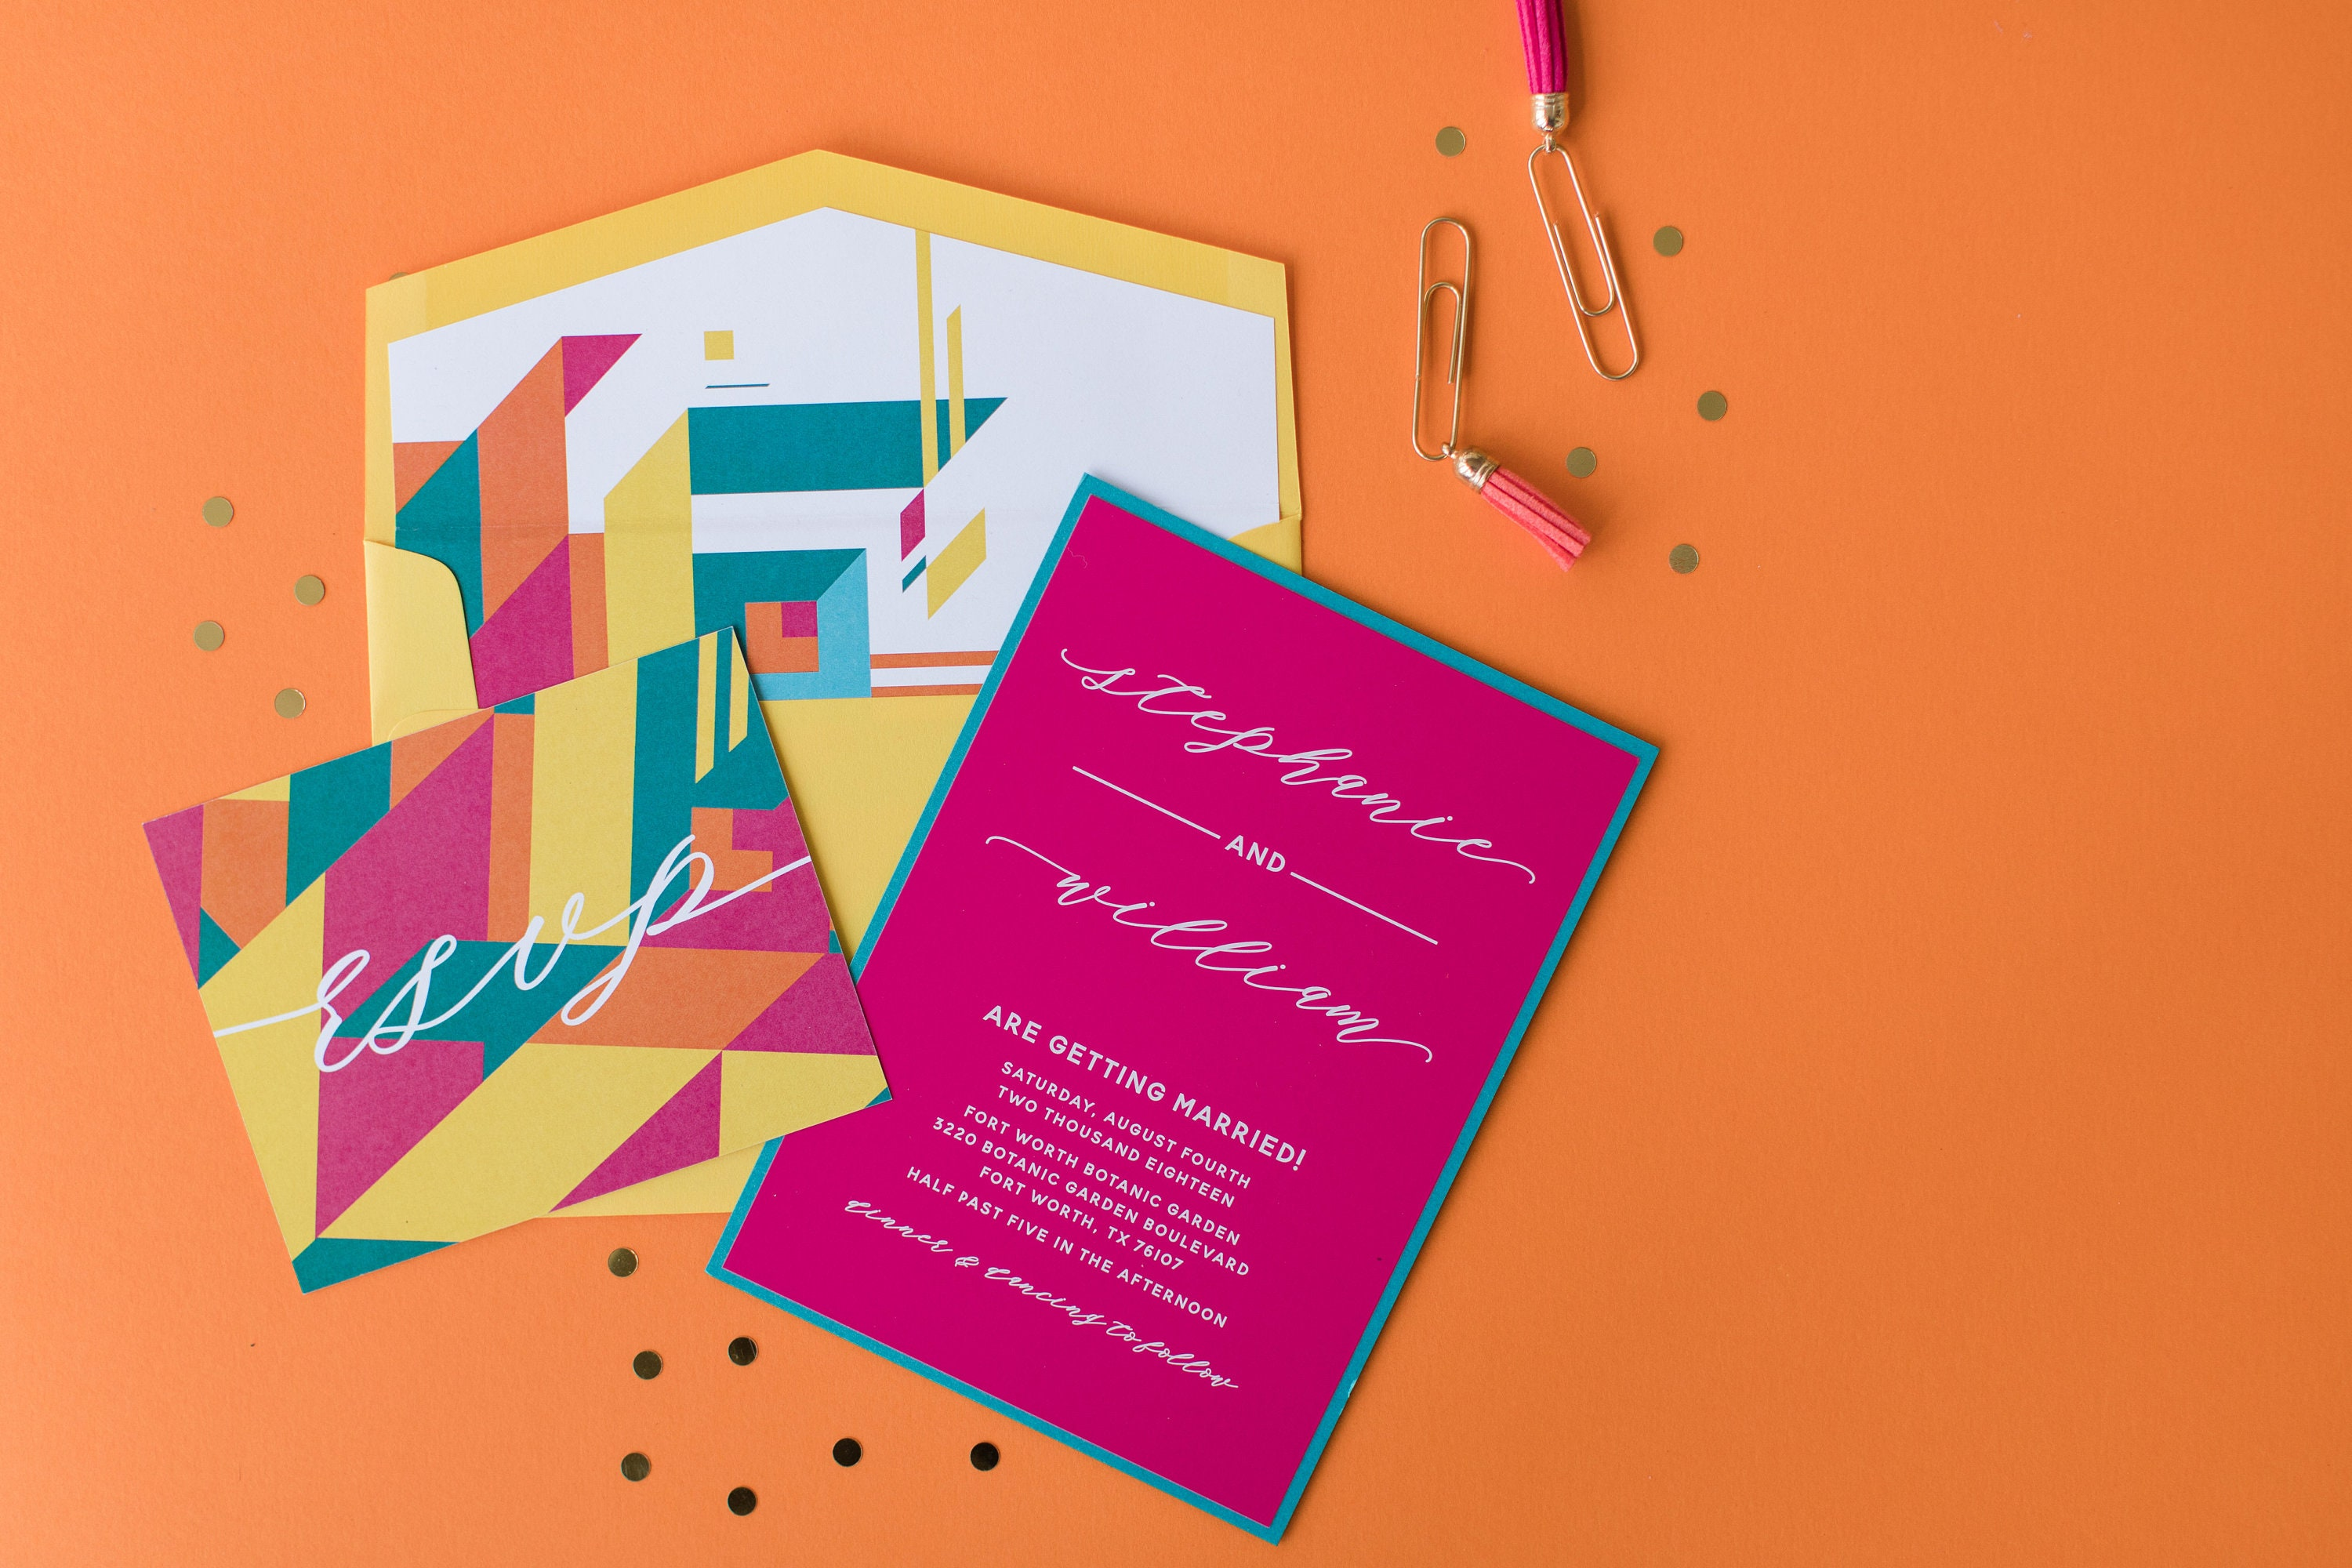 Fuschia And Orange Wedding Invitations: Bright Wedding Invitation, Modern Geometric Shapes With